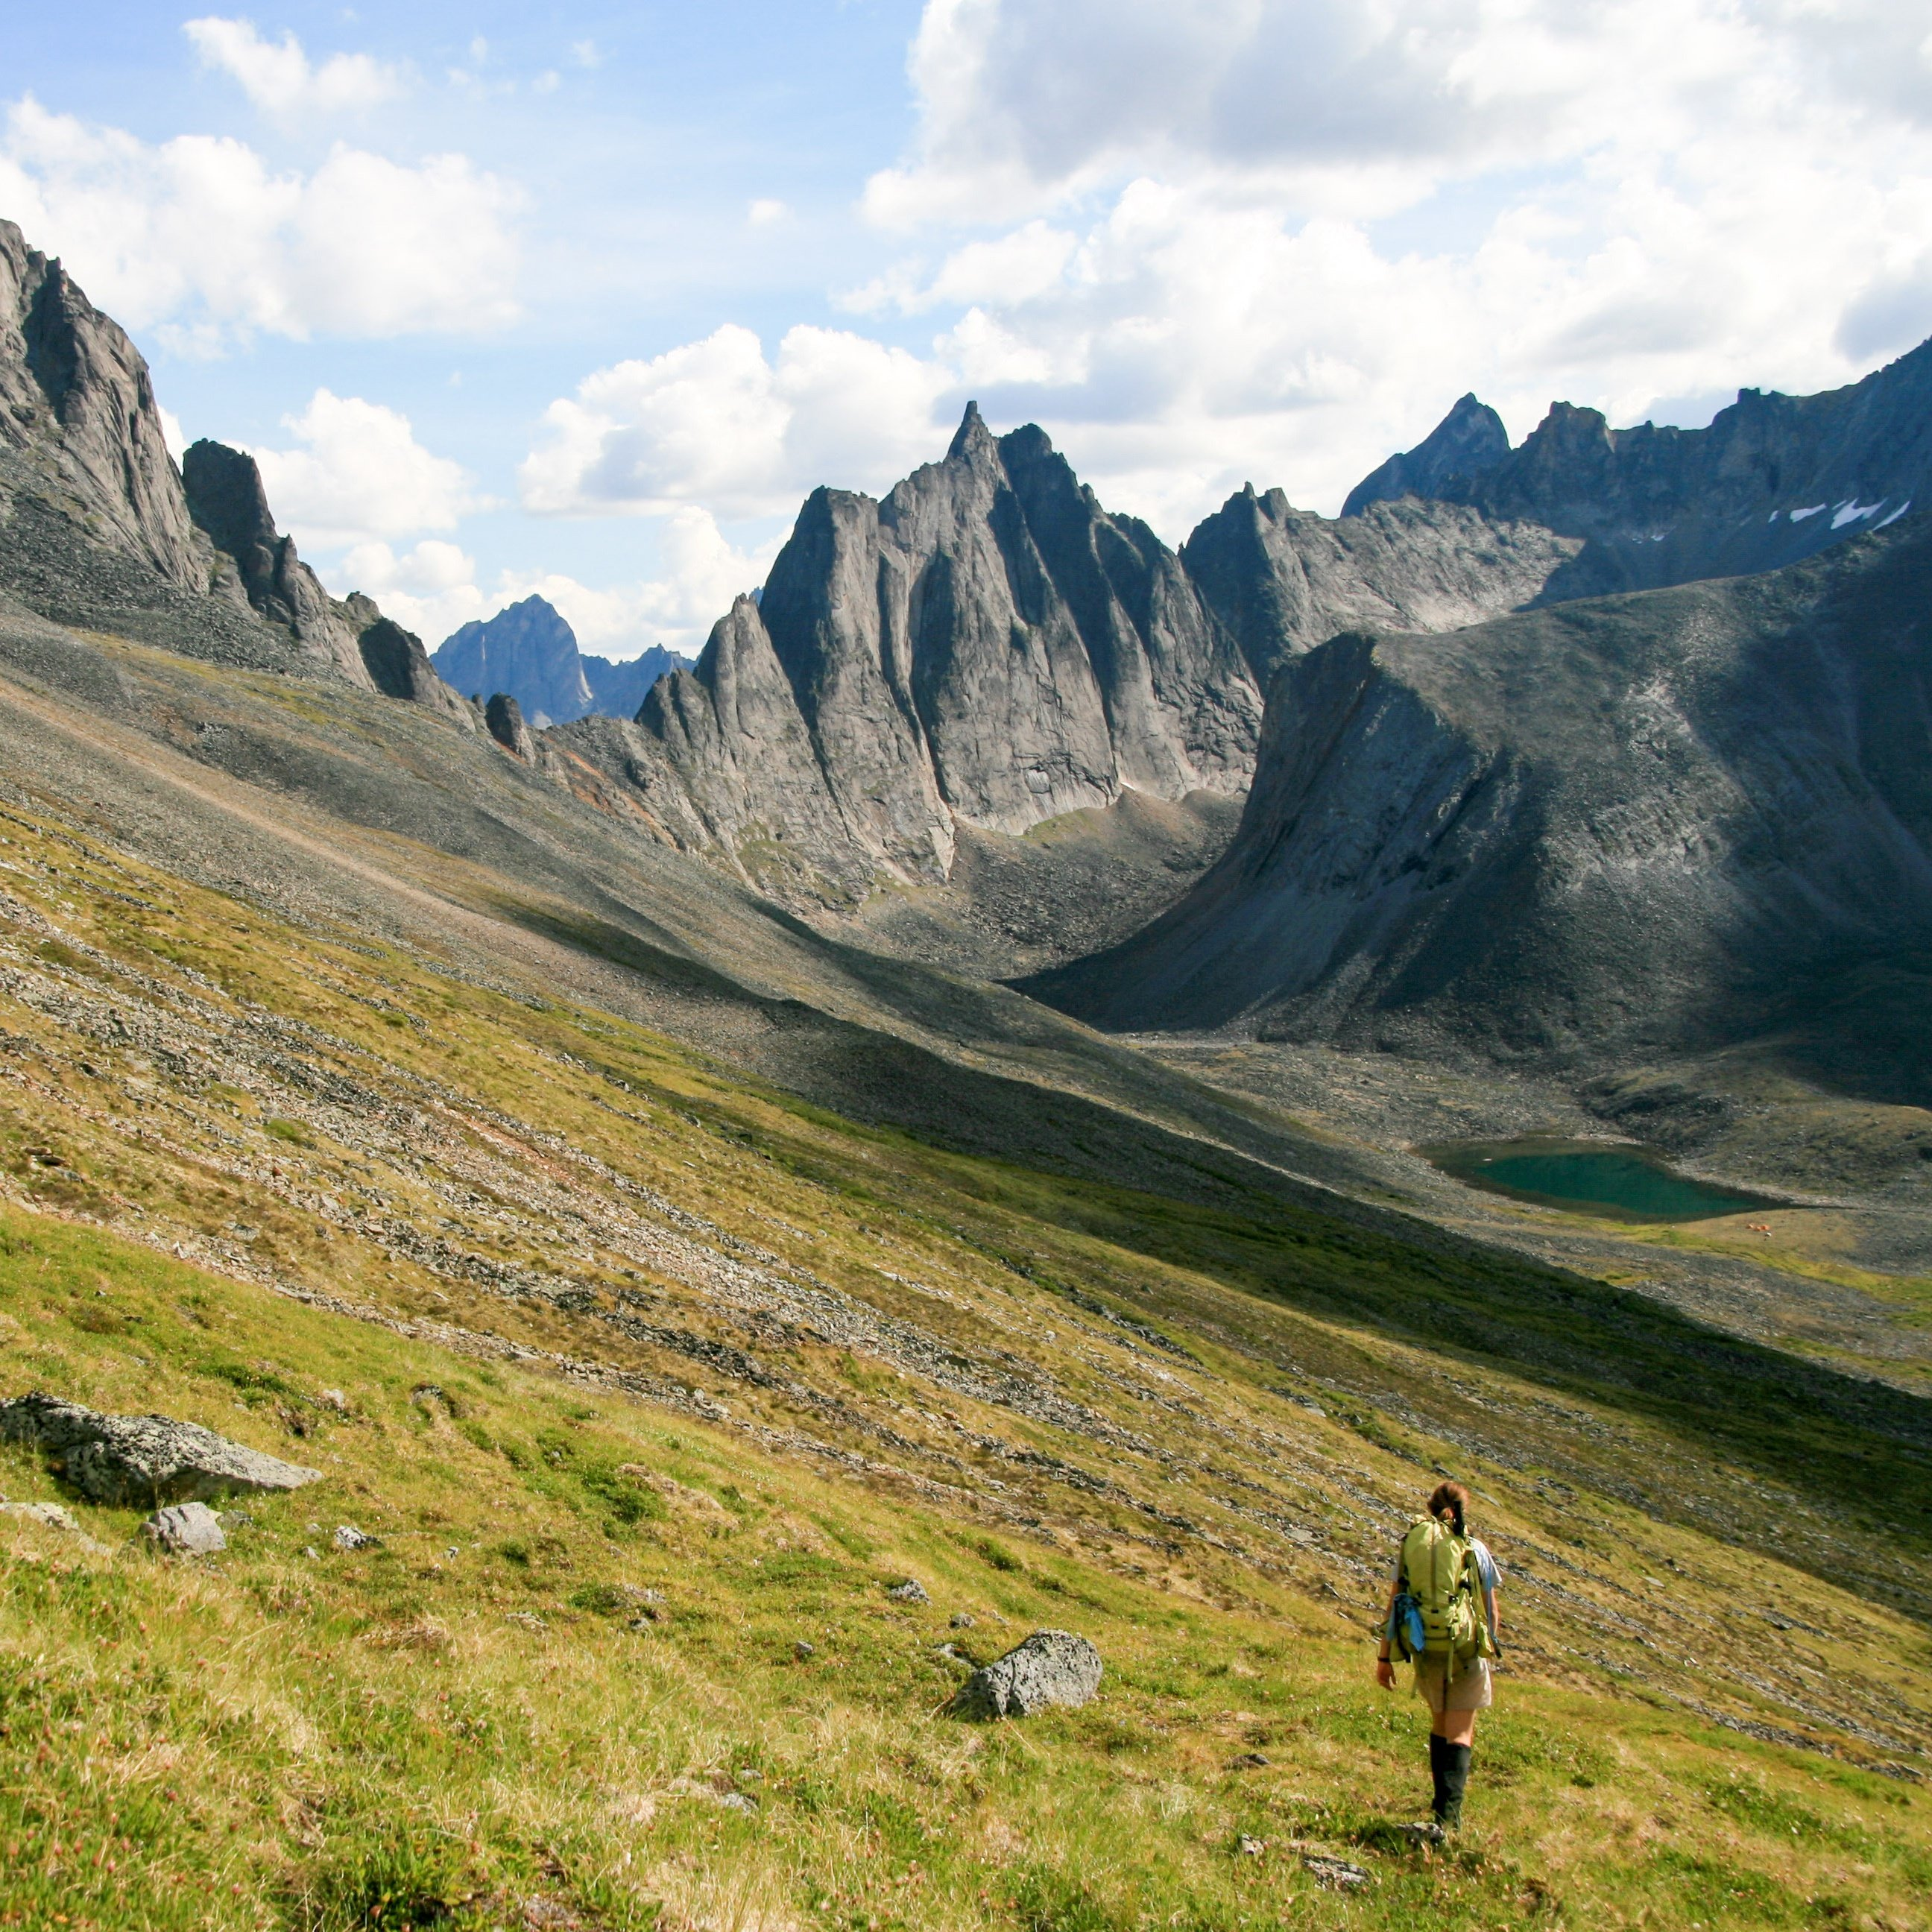 Backpacker hikes through grassy foothills in the Yukon wiht high, steep peaks in the background